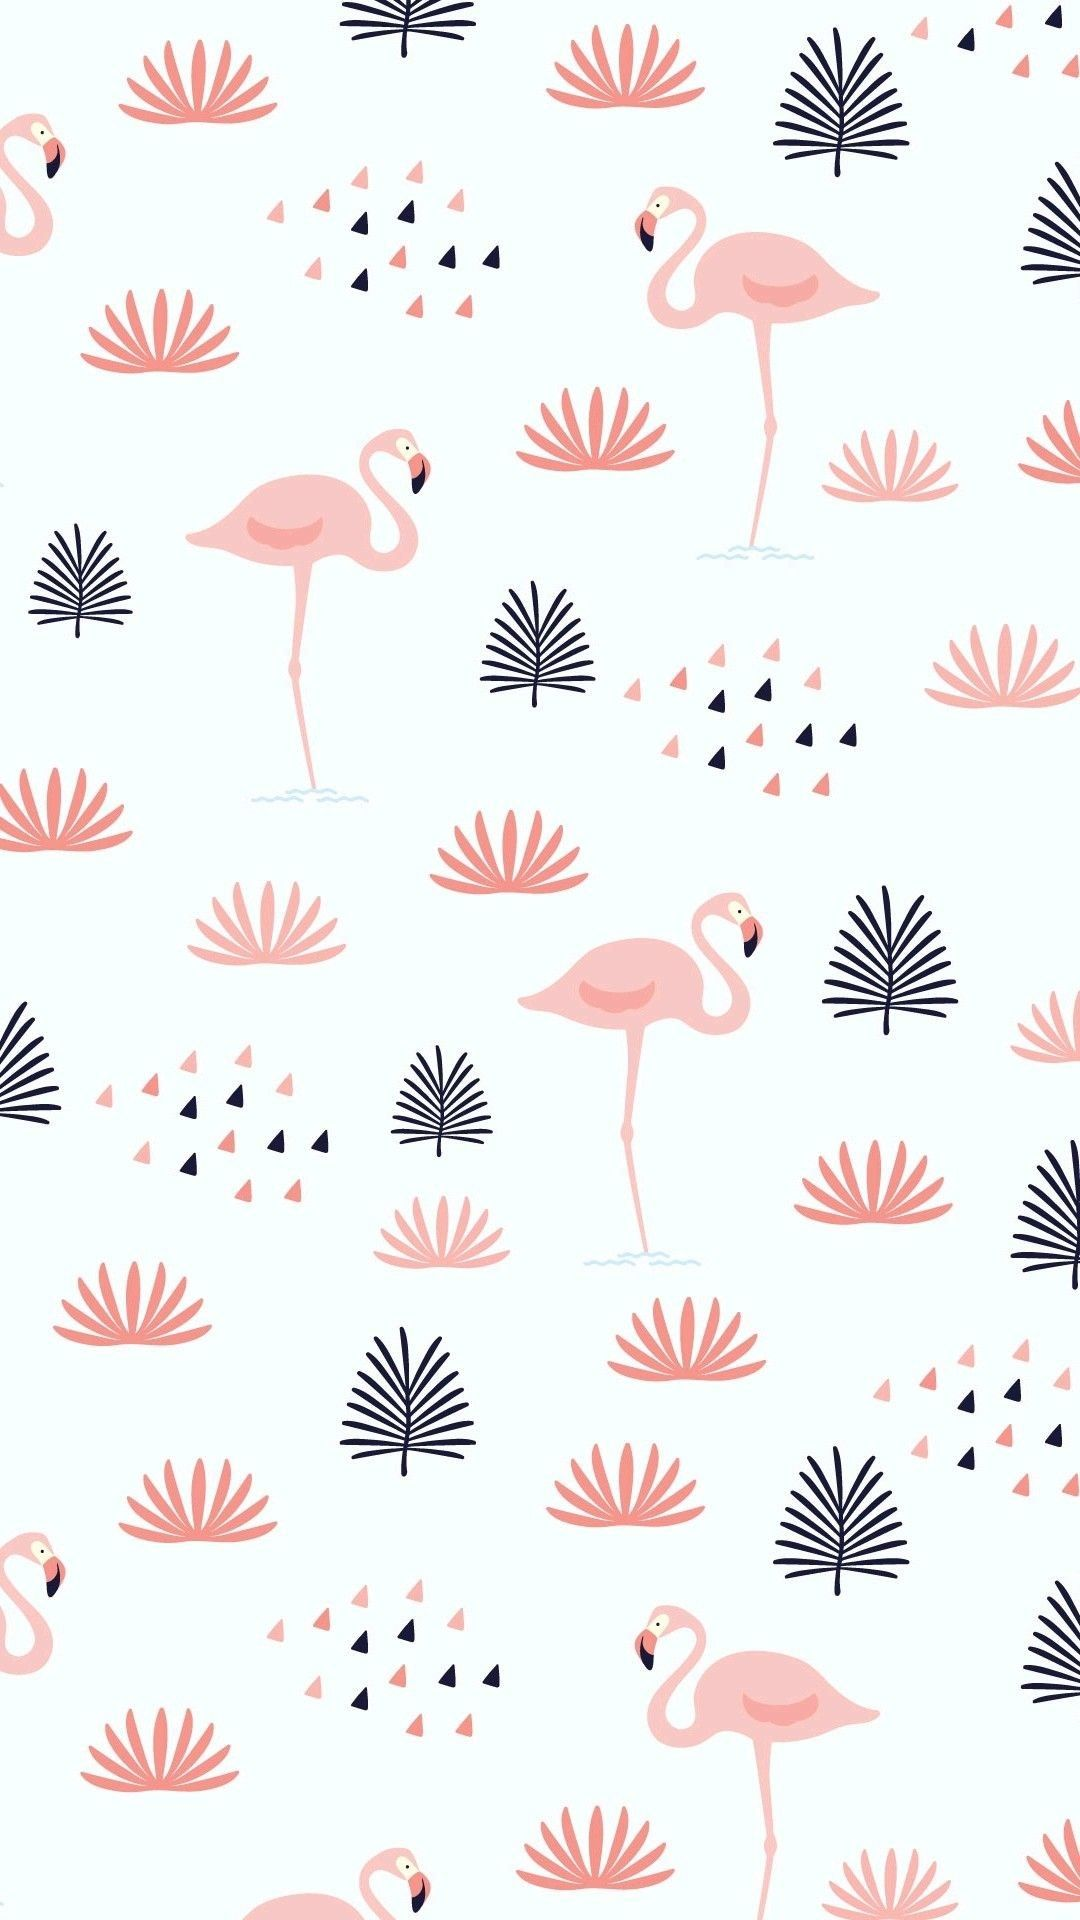 Pin by sunday hues on Everything (With images) Flamingo